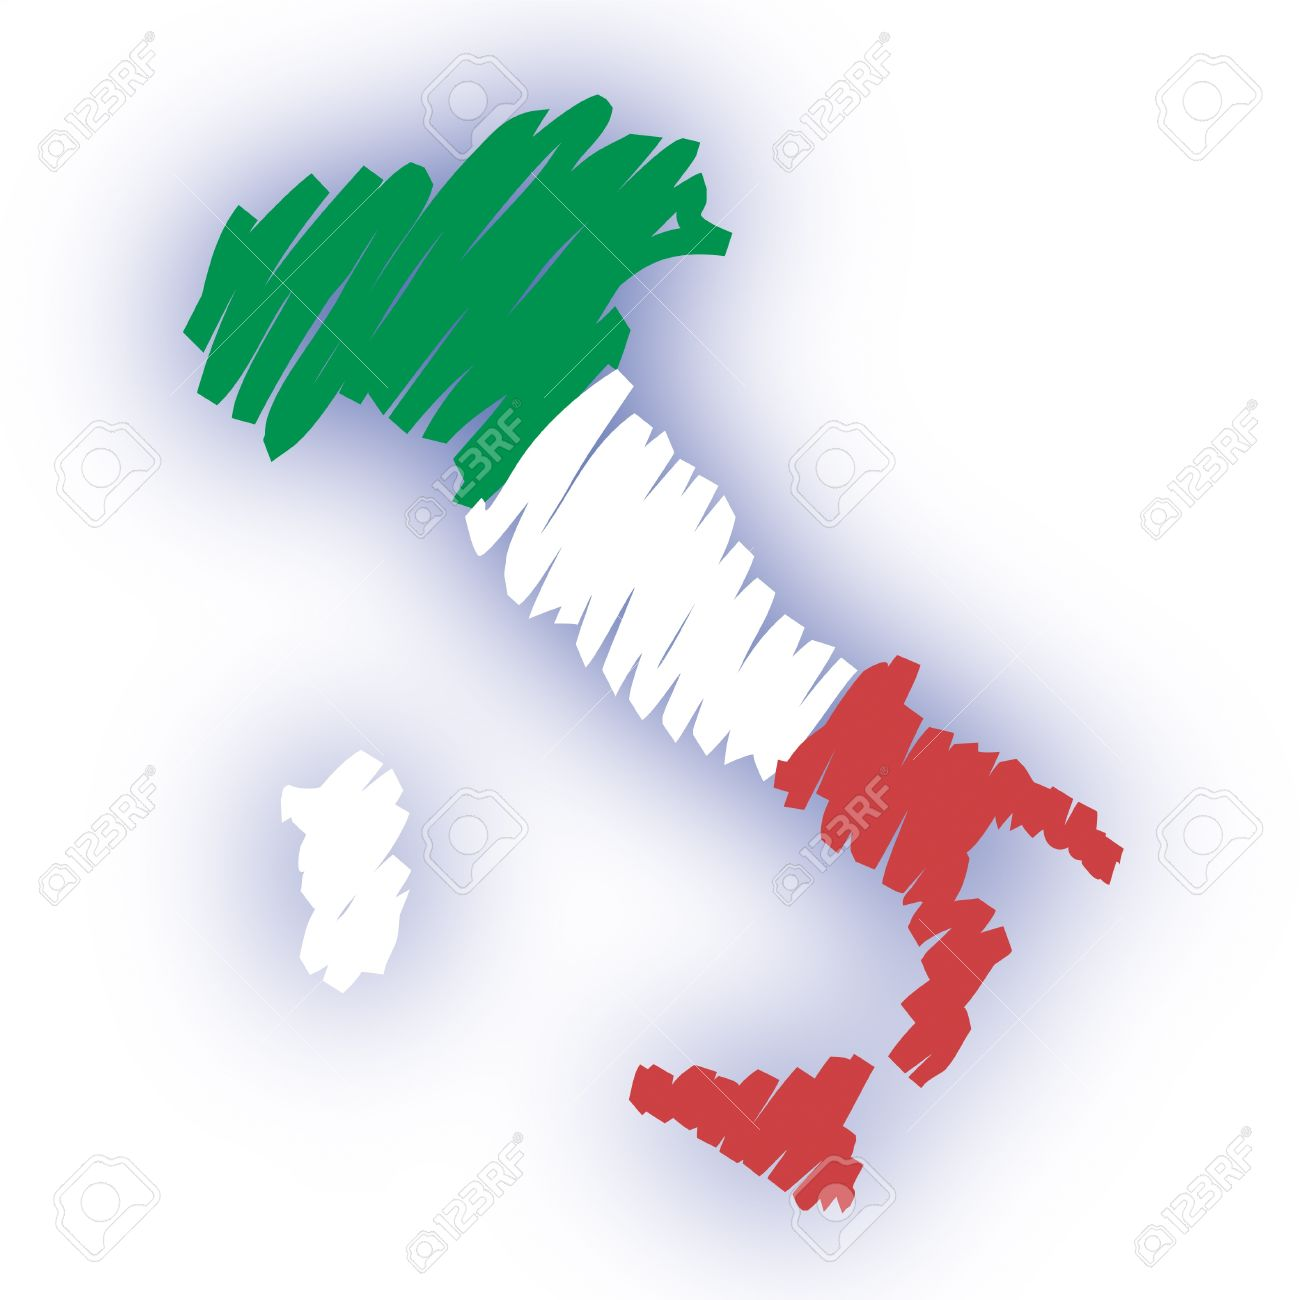 Cartina italia clipart.